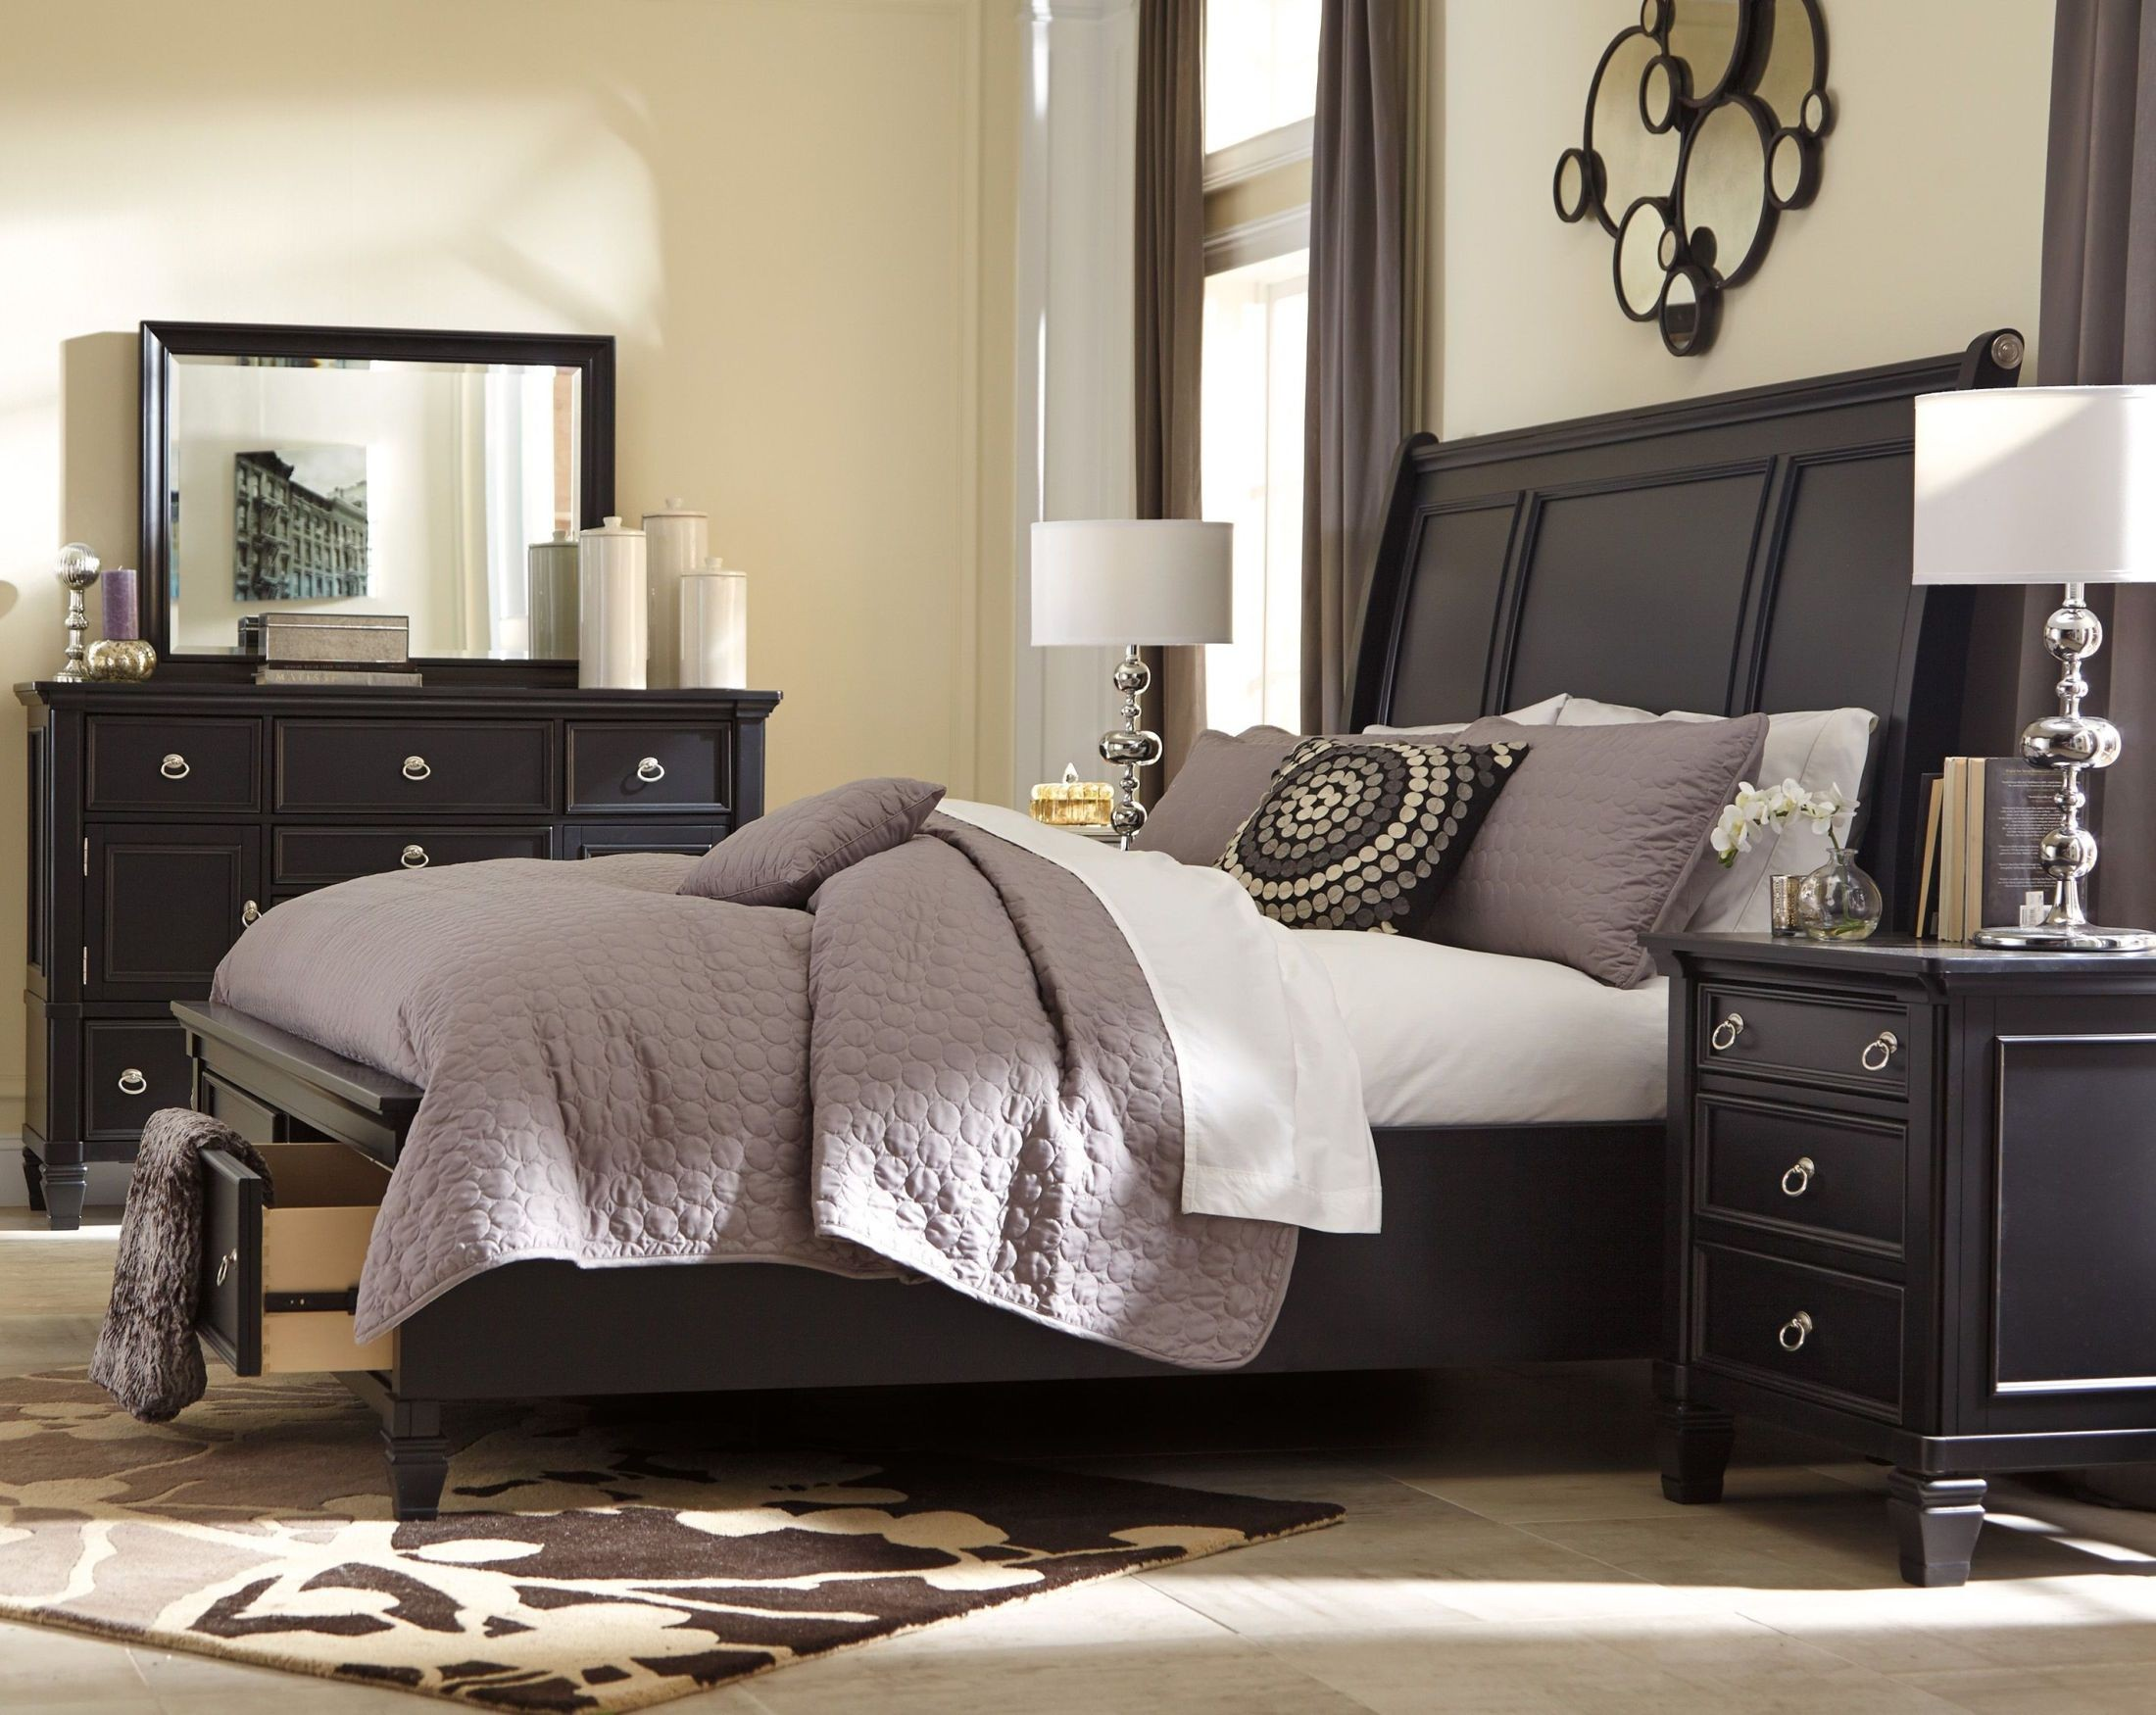 Greensburg Storage Sleigh Bedroom Set From Ashley B671 Coleman Furniture